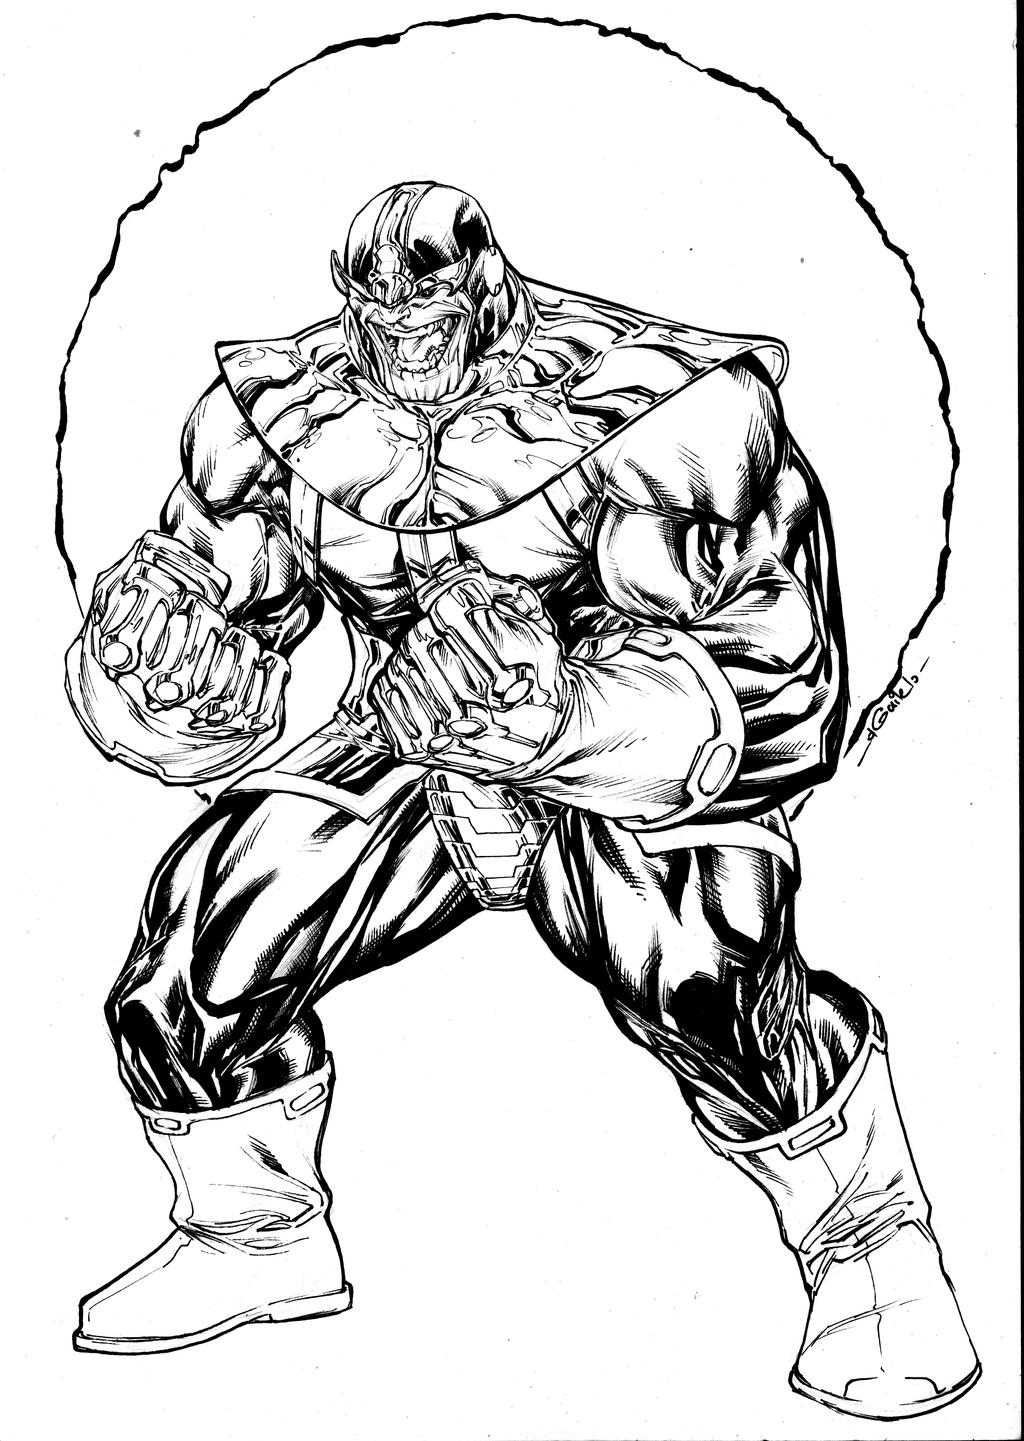 Thanos - sept8th2014 by SpiderGuile on DeviantArt